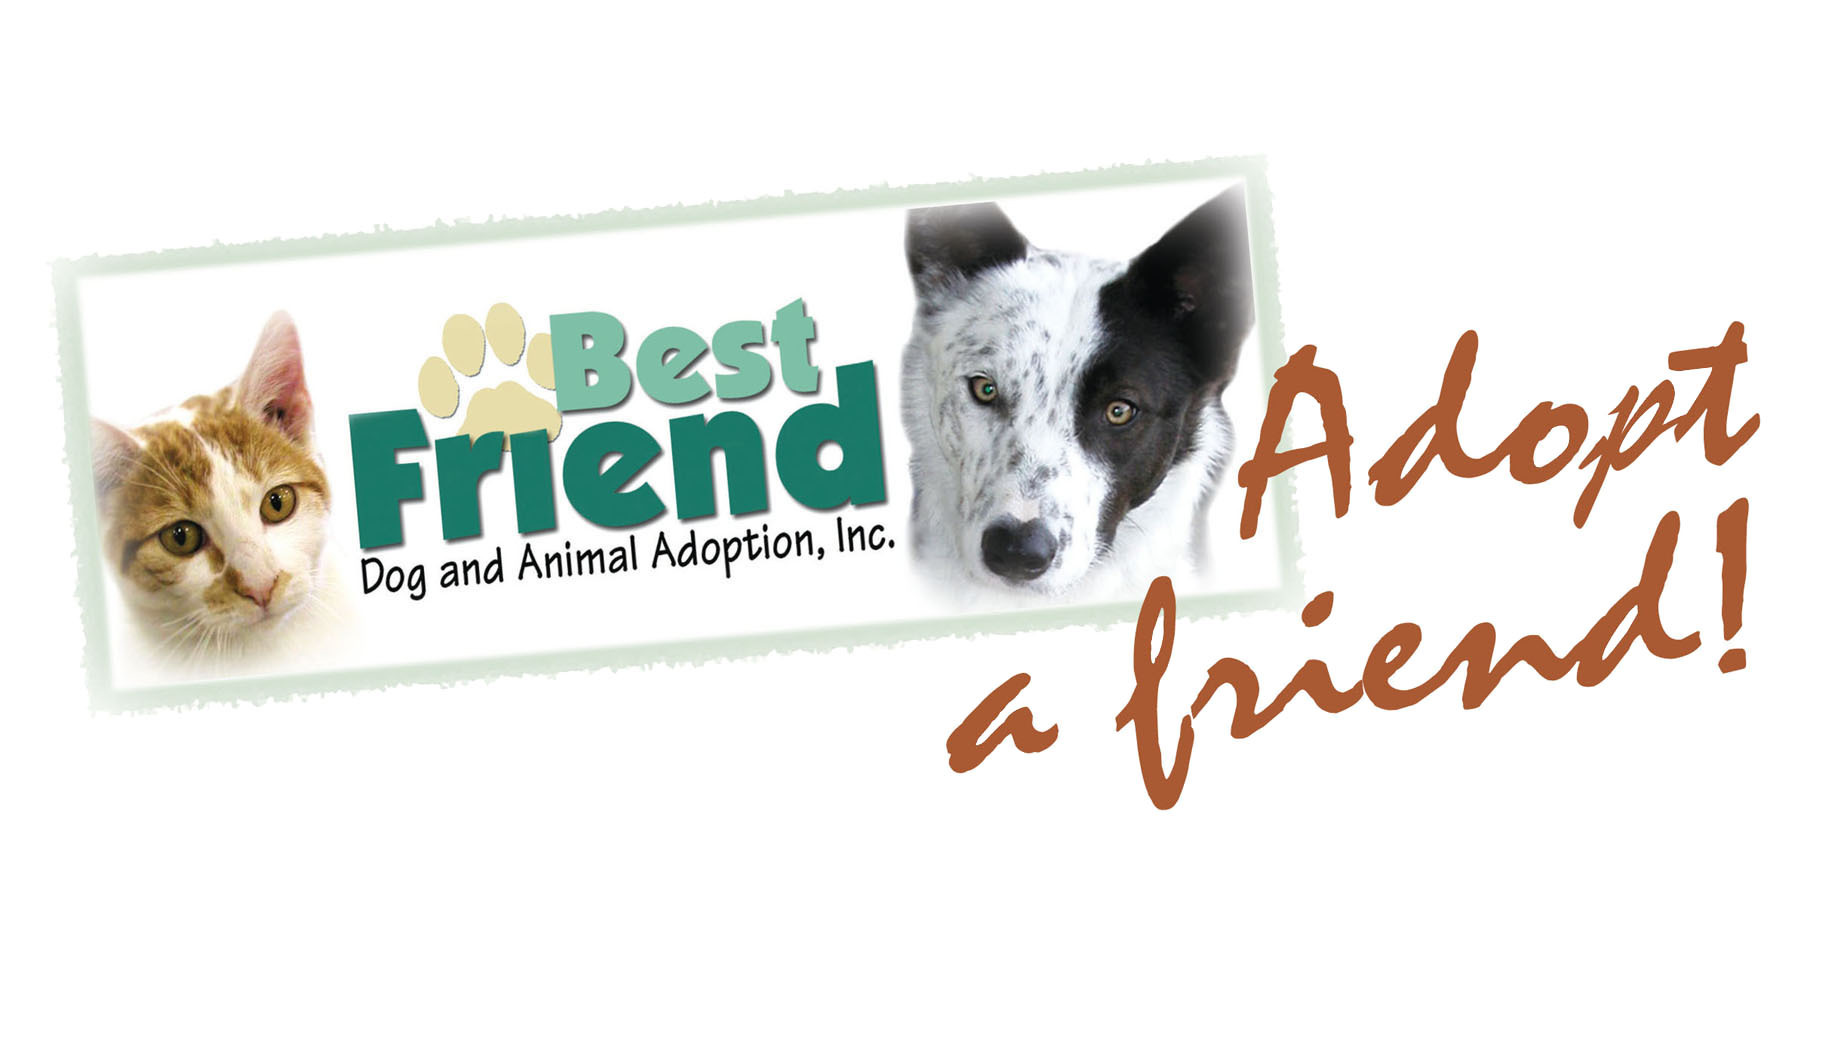 Best Friend Dog and Animal Adoption, Inc.